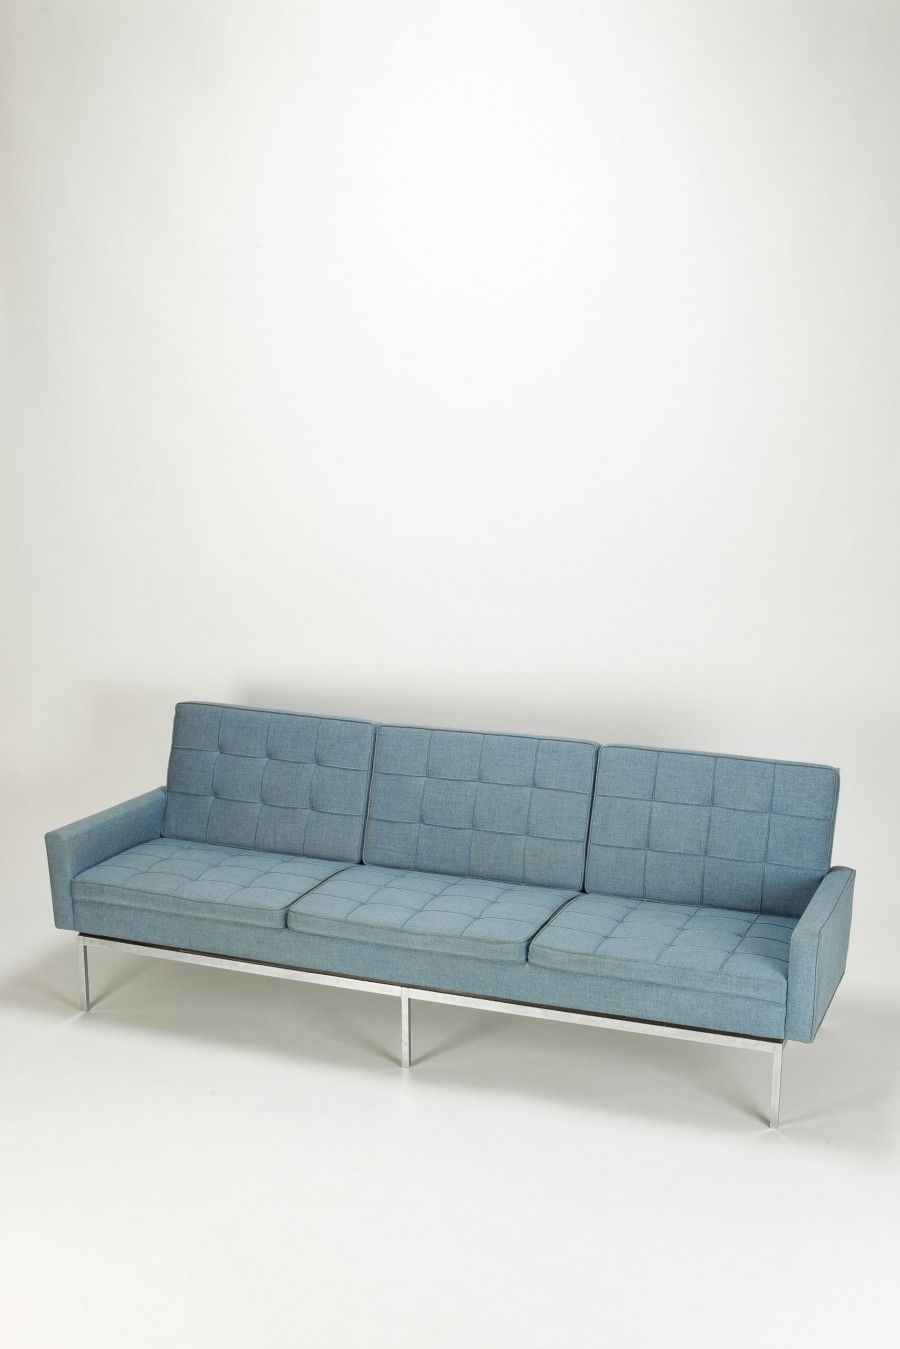 Florence Knoll Sofa Model 67a Florence Knoll Furniture Sofa